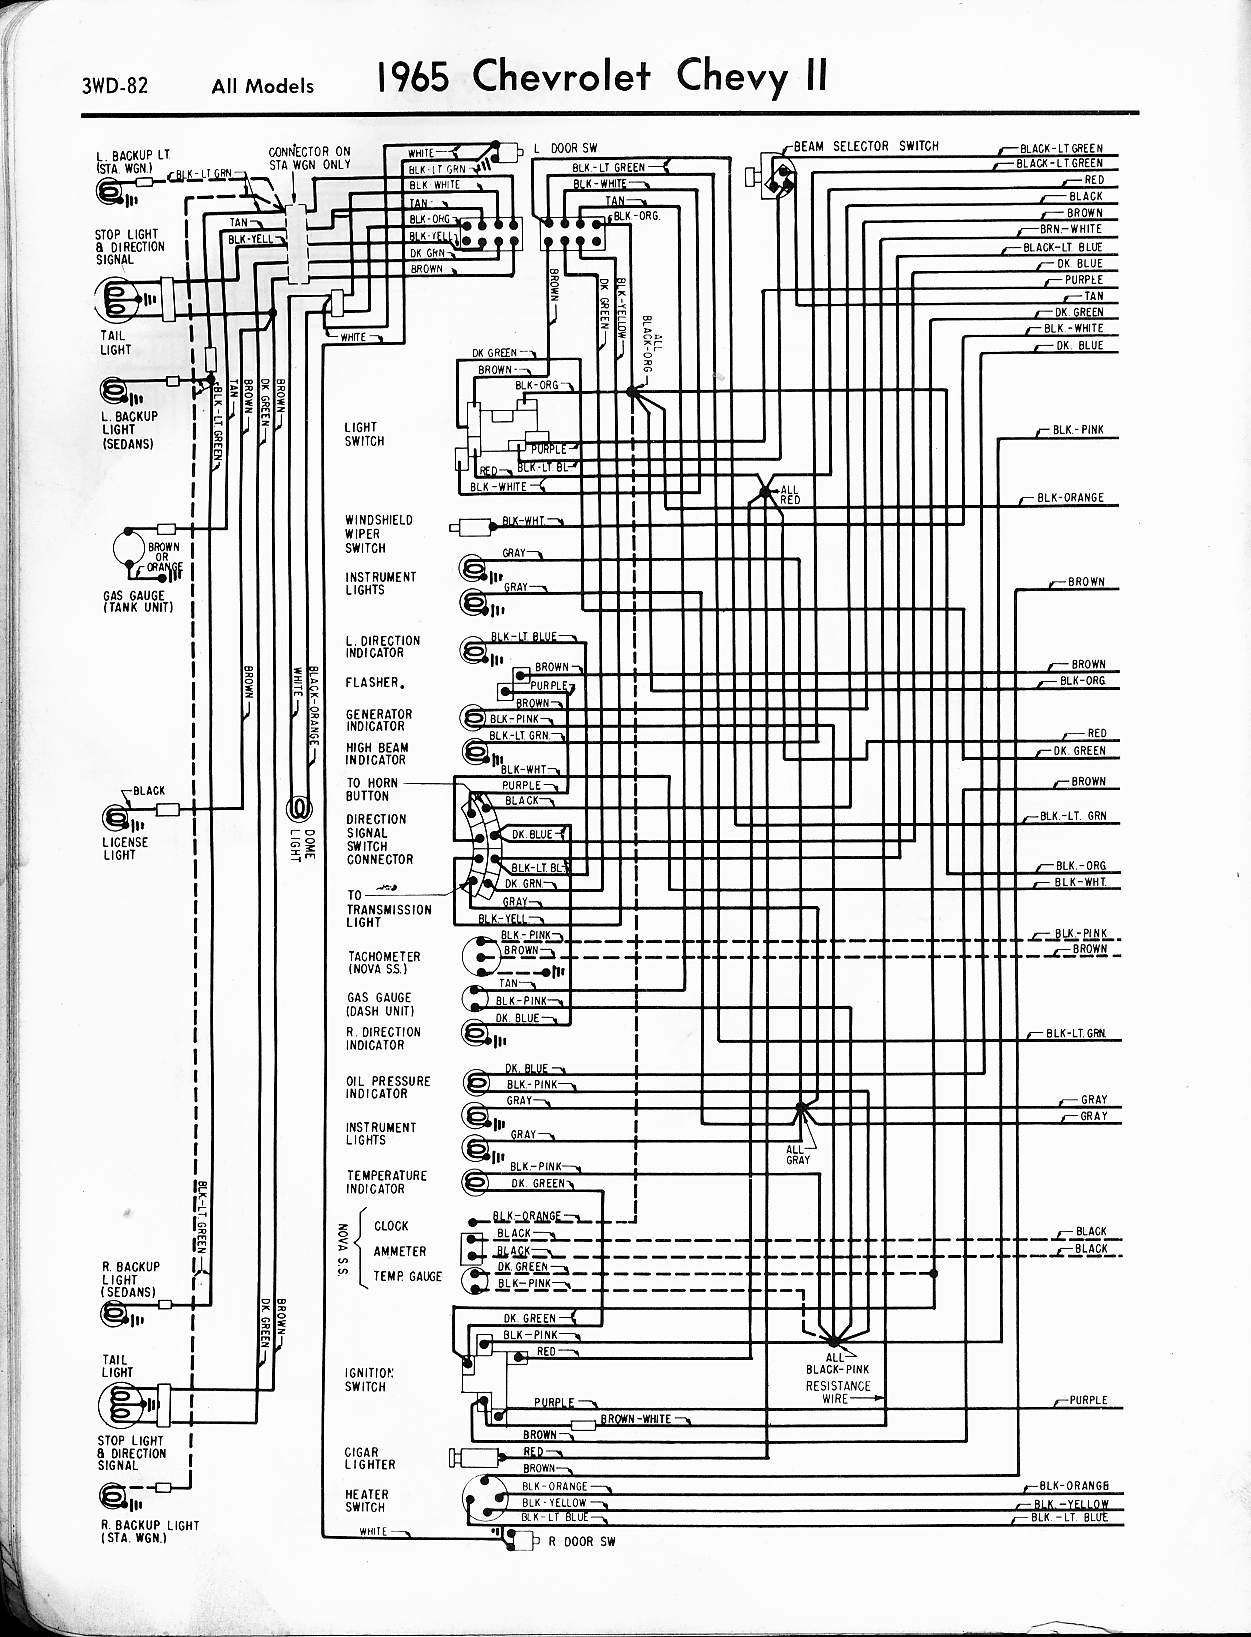 1965 Chevy Wiring Harness Schematic - DIY Enthusiasts Wiring Diagrams •